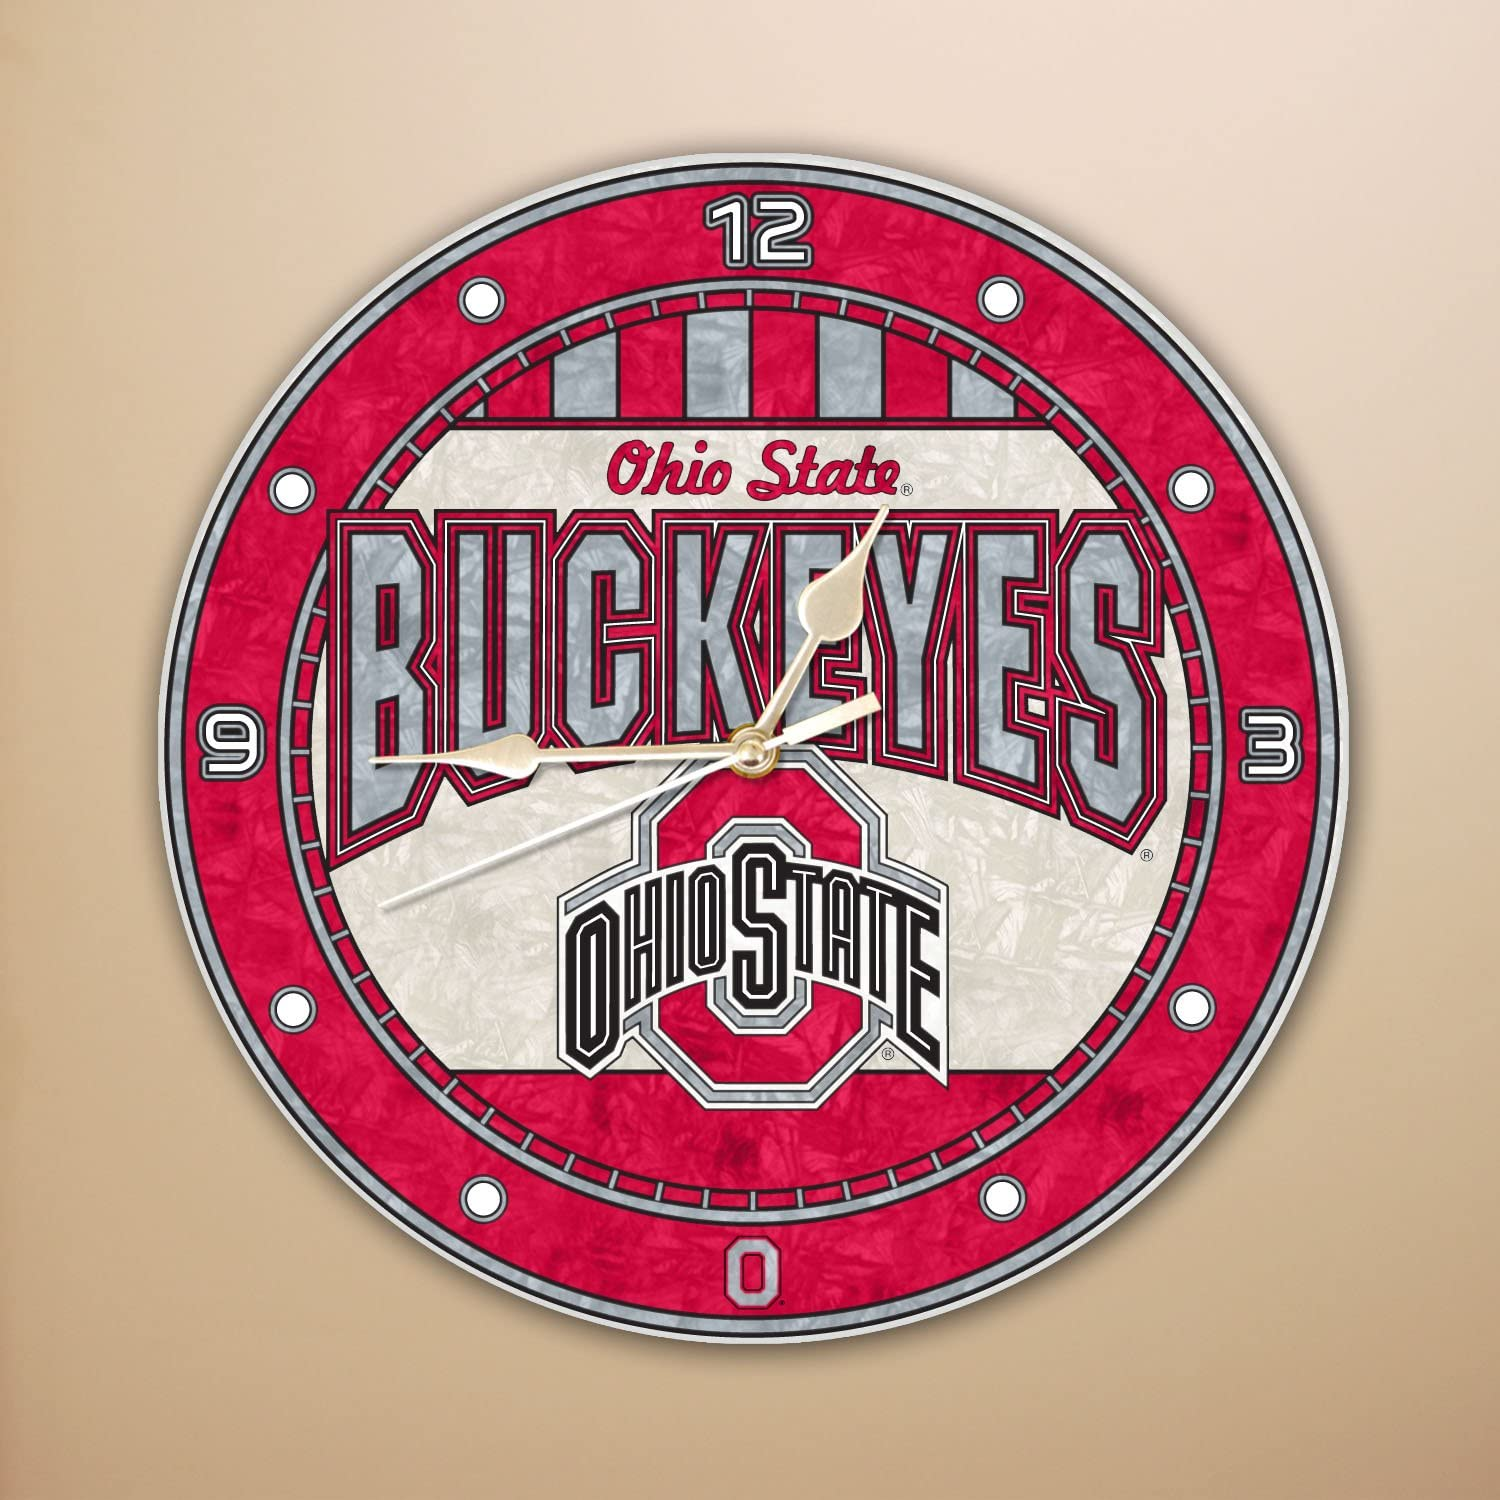 Memory Company Ohio State Excellent Buckeyes Art 12in Clock Glass Japan Maker New